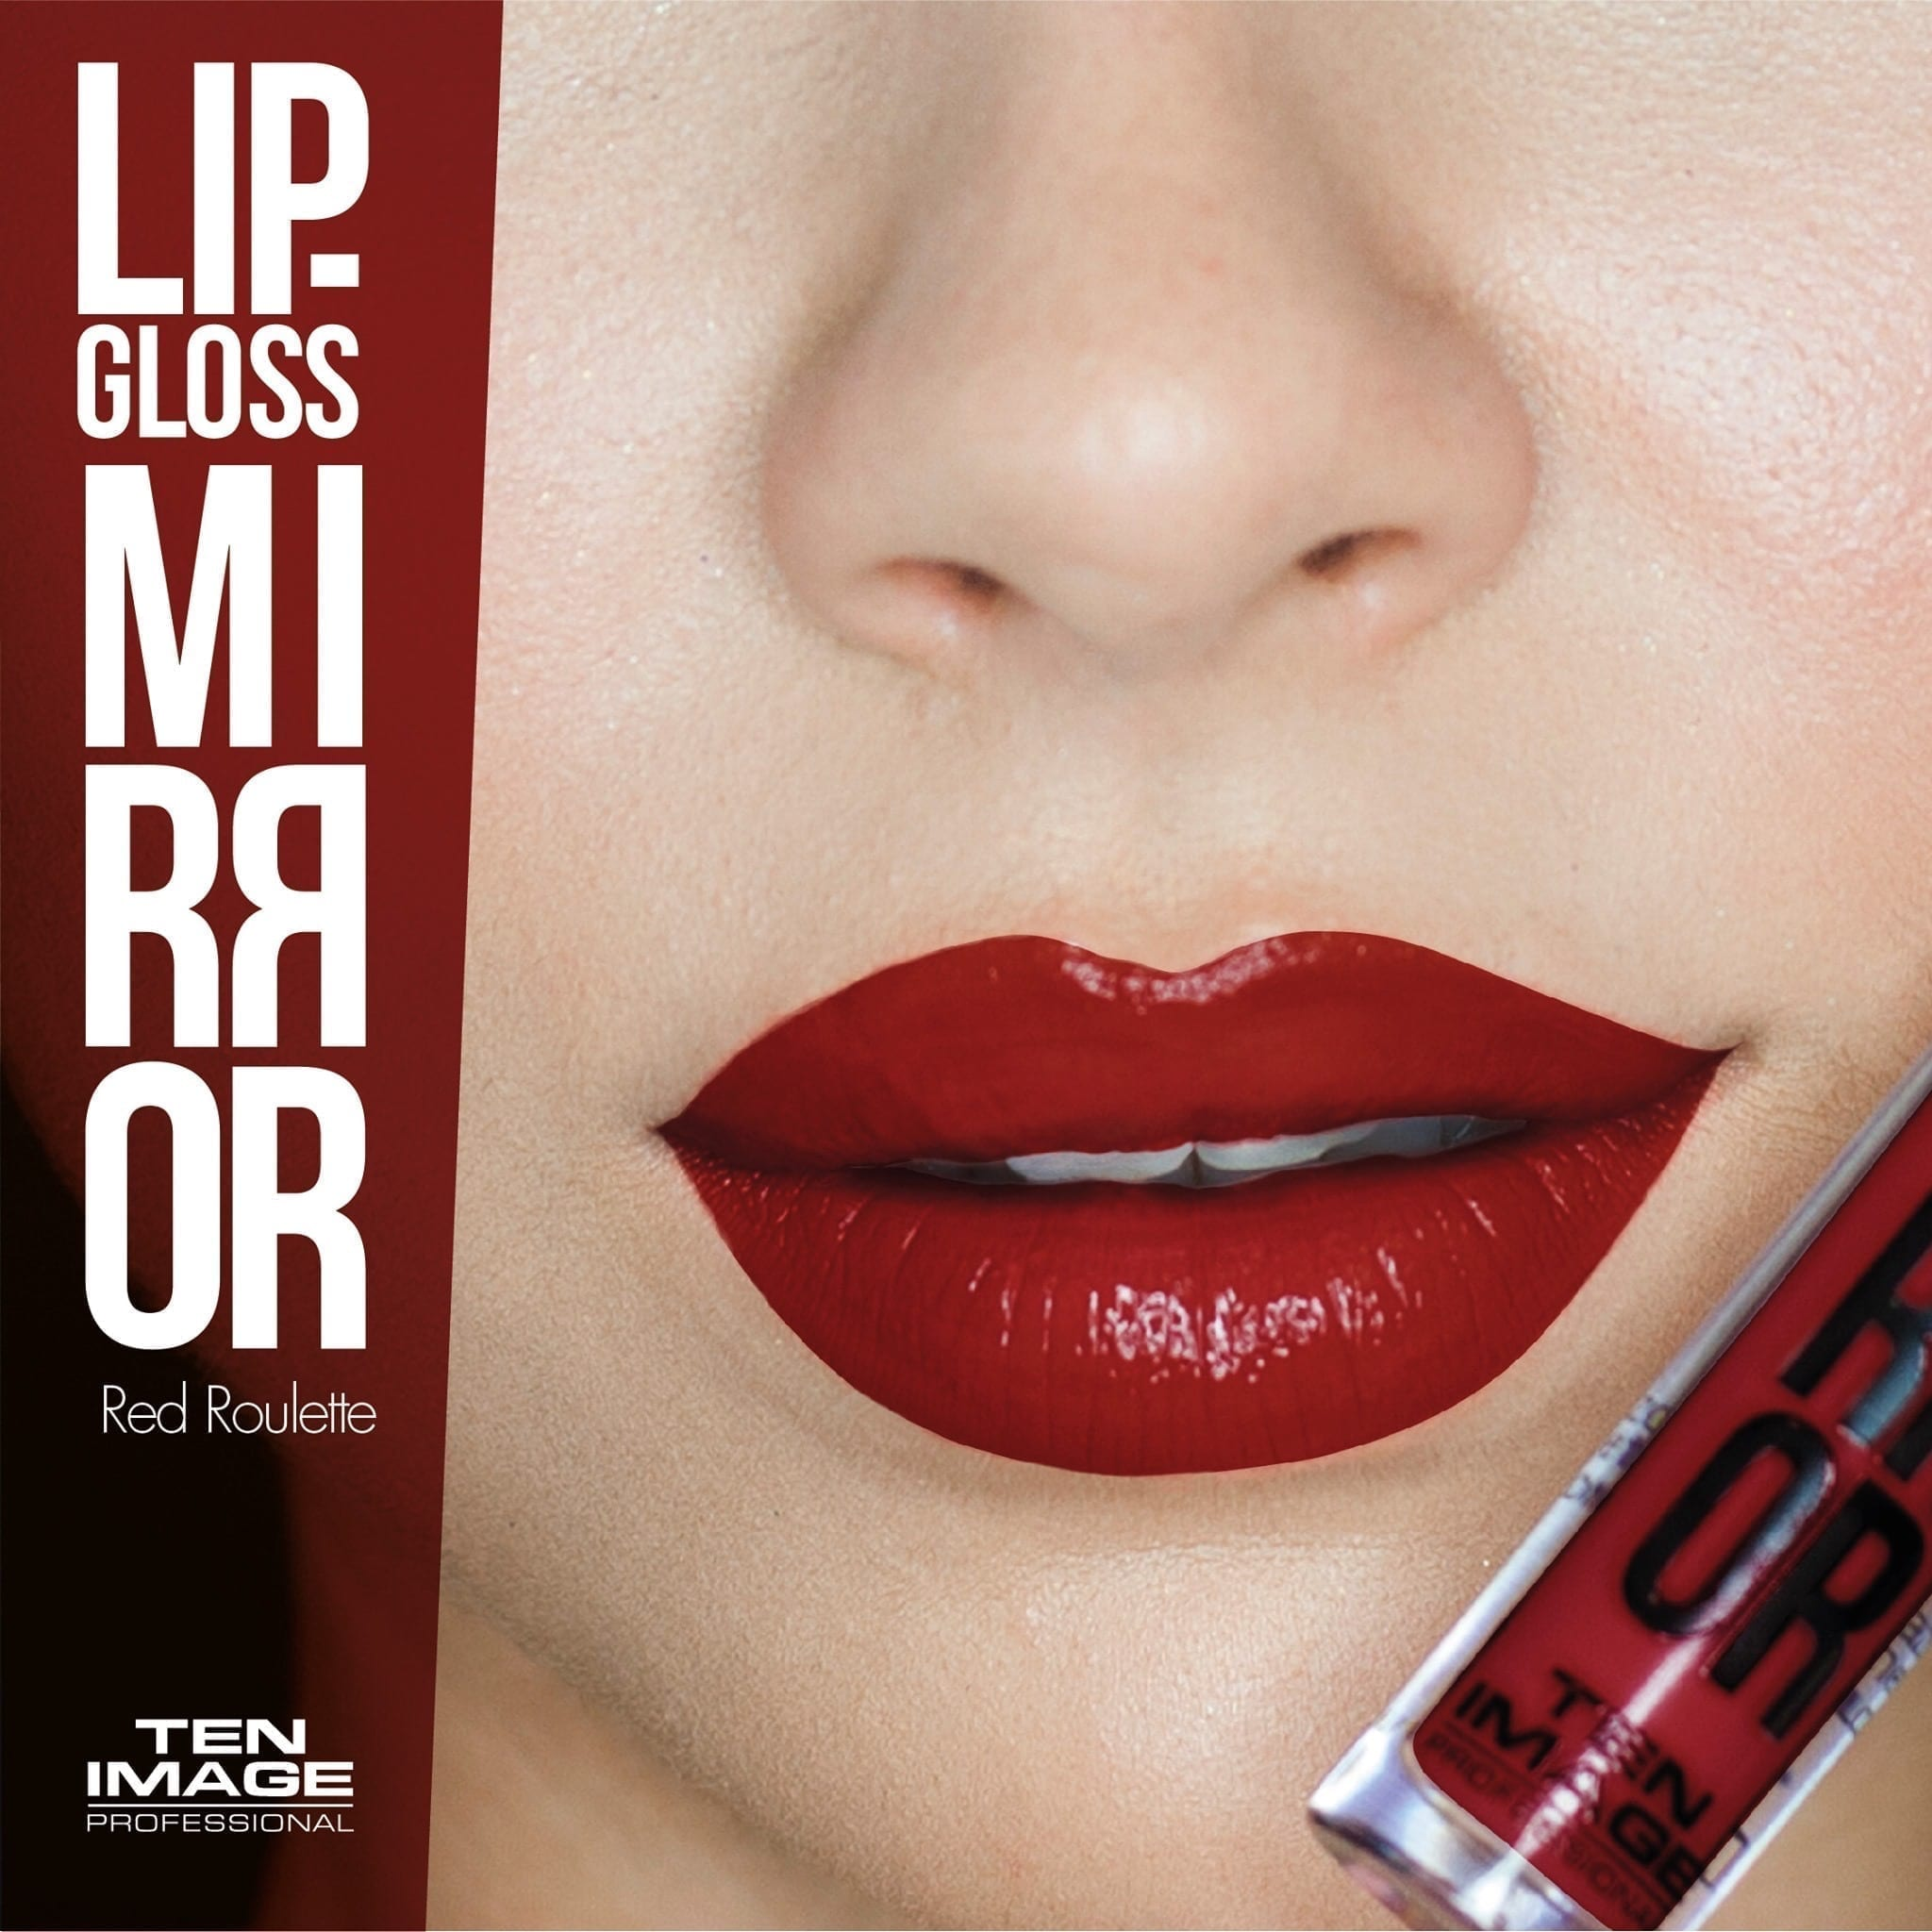 ML-01 Red Roulette - Mirror Lip Gloss - Ten Image Professional